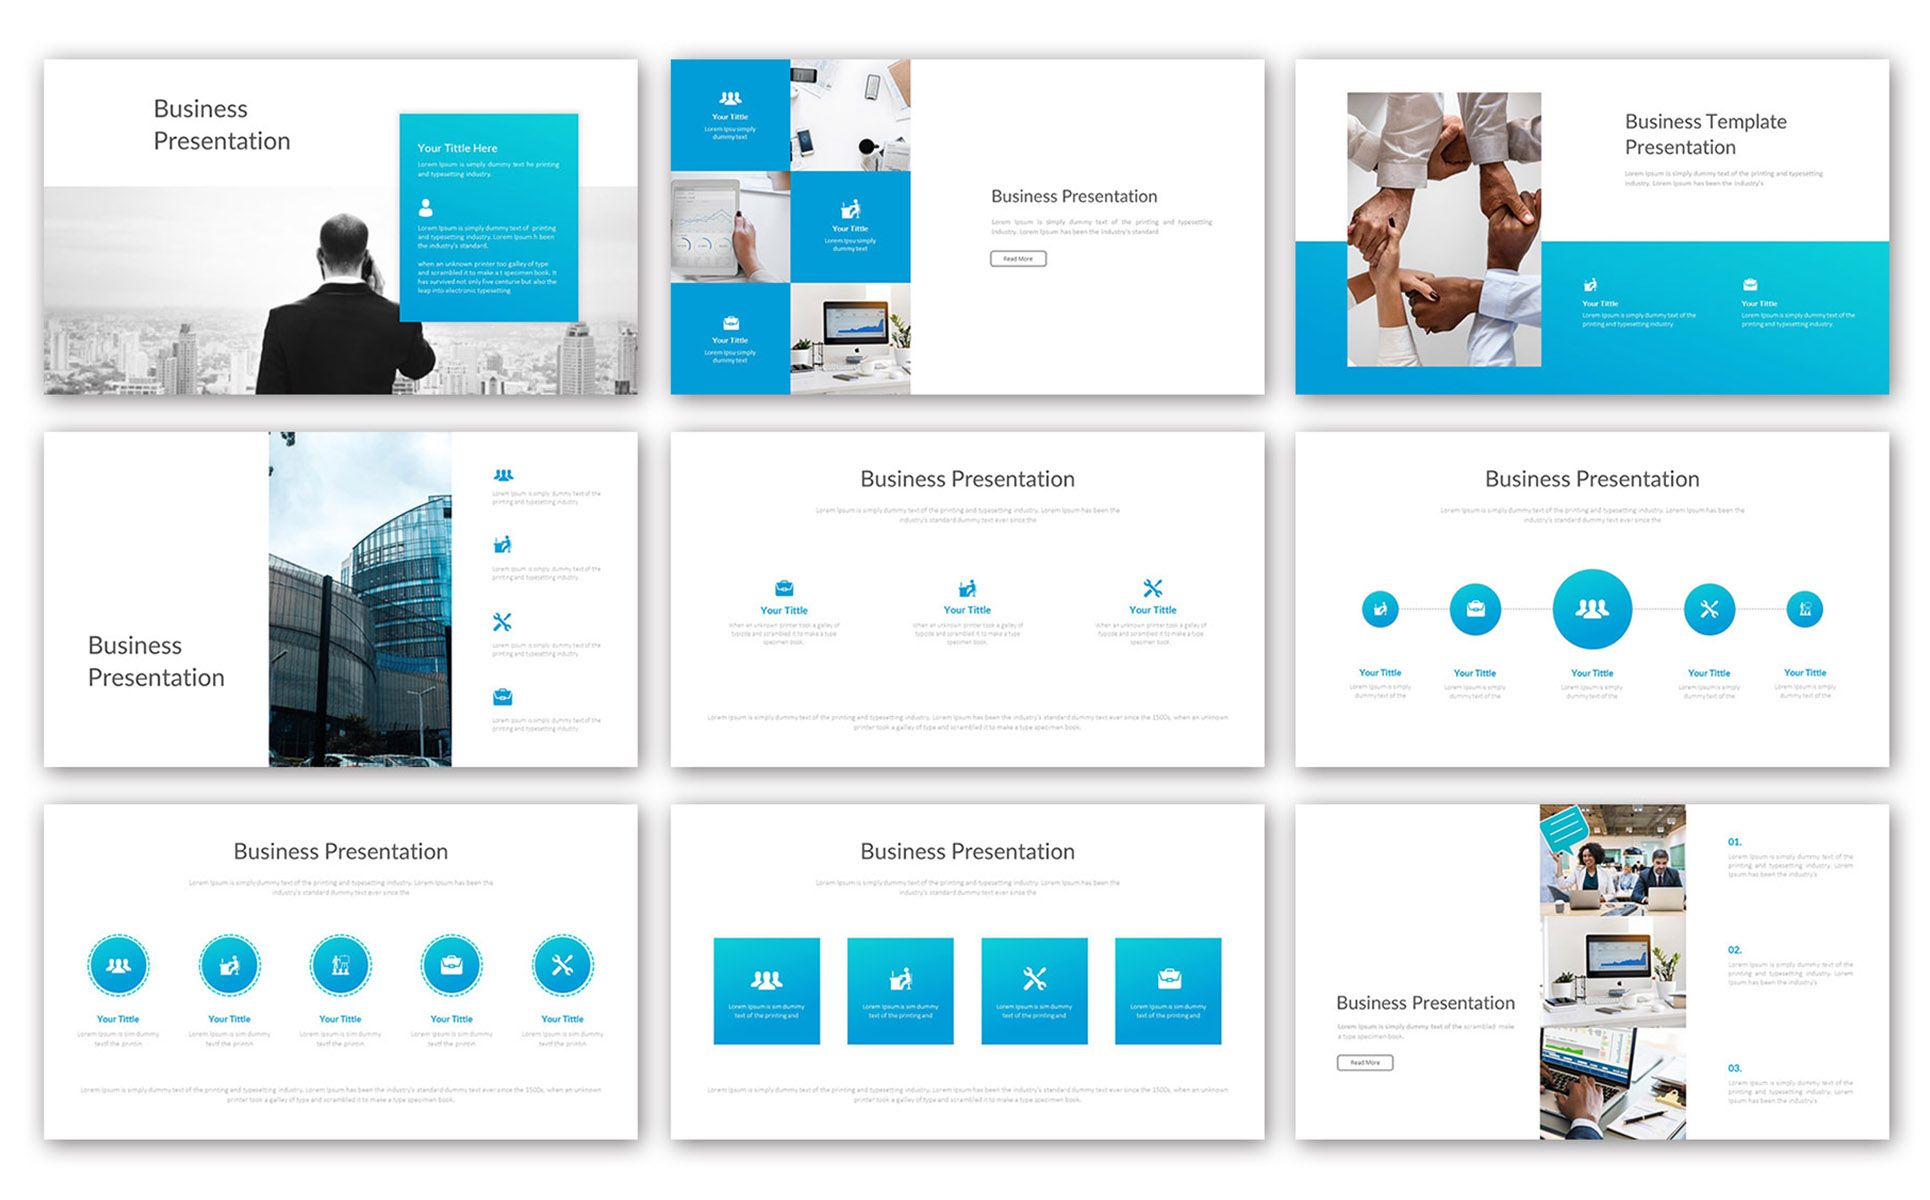 Big Business - Clean PowerPoint Template #76820 | Poster